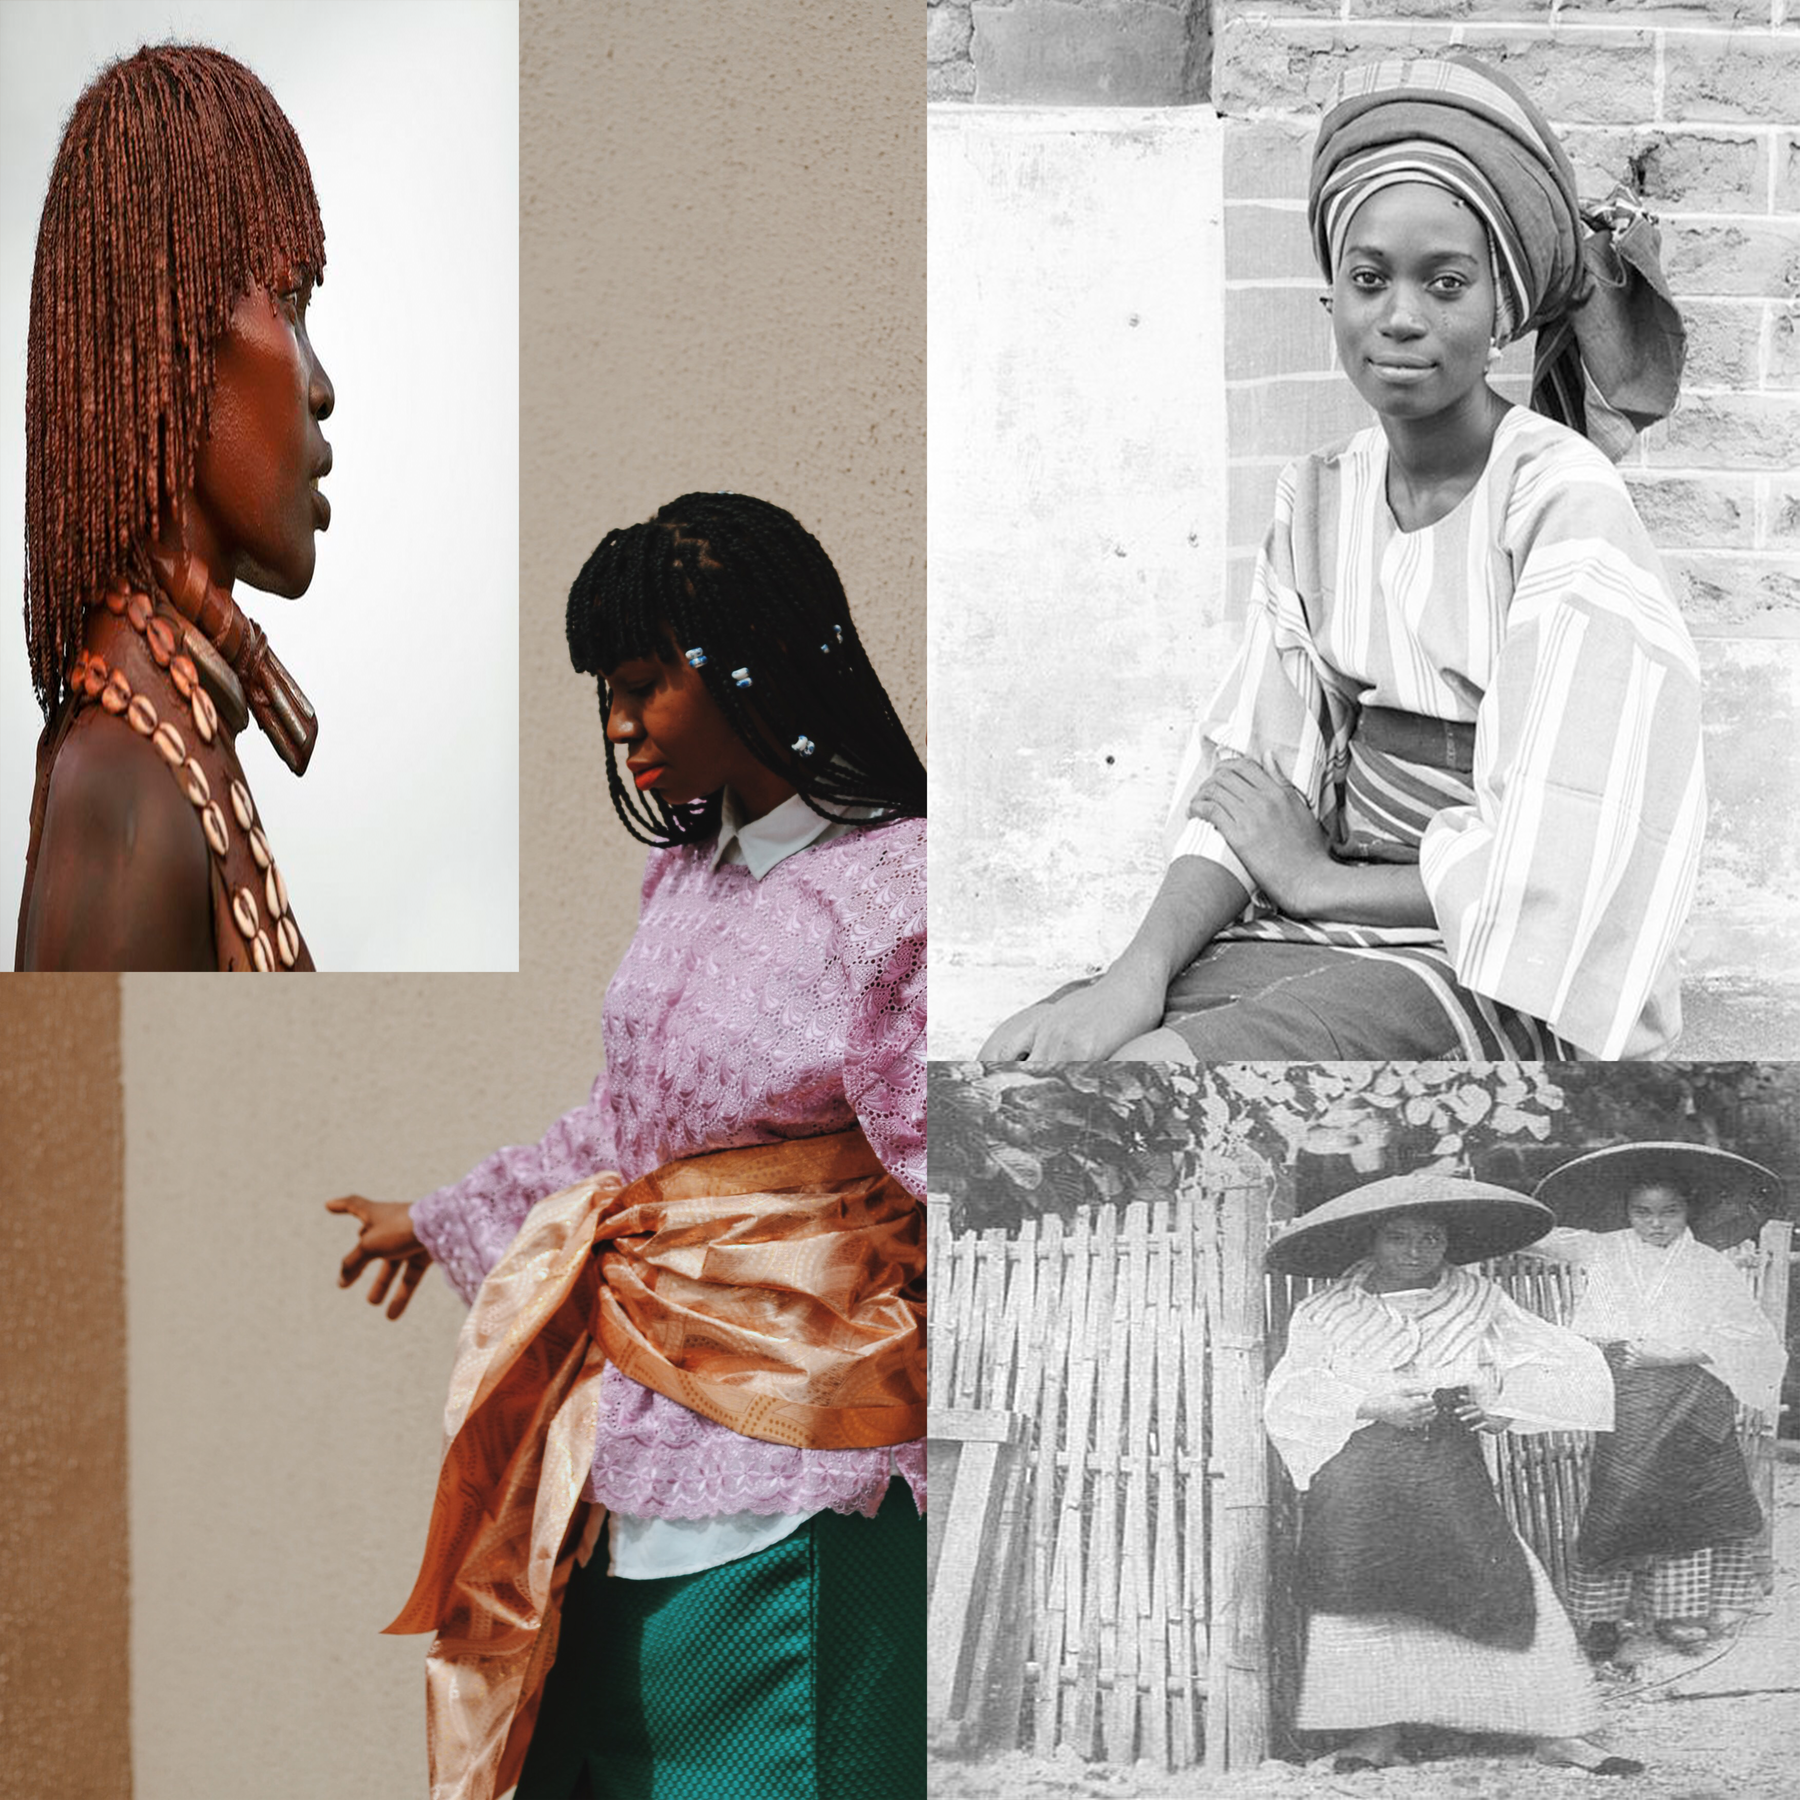 Inspired by these images Buba ( top right by Eliot Elisofon  Lagos, Nigeria) which is a style of blouse accustomed to the Yorubas of western Nigeria. Bottom right- Old Philippines Womens fashion. Ph. unknown. Top left-  my braid inspiration from the Hamer people of ethiopia,